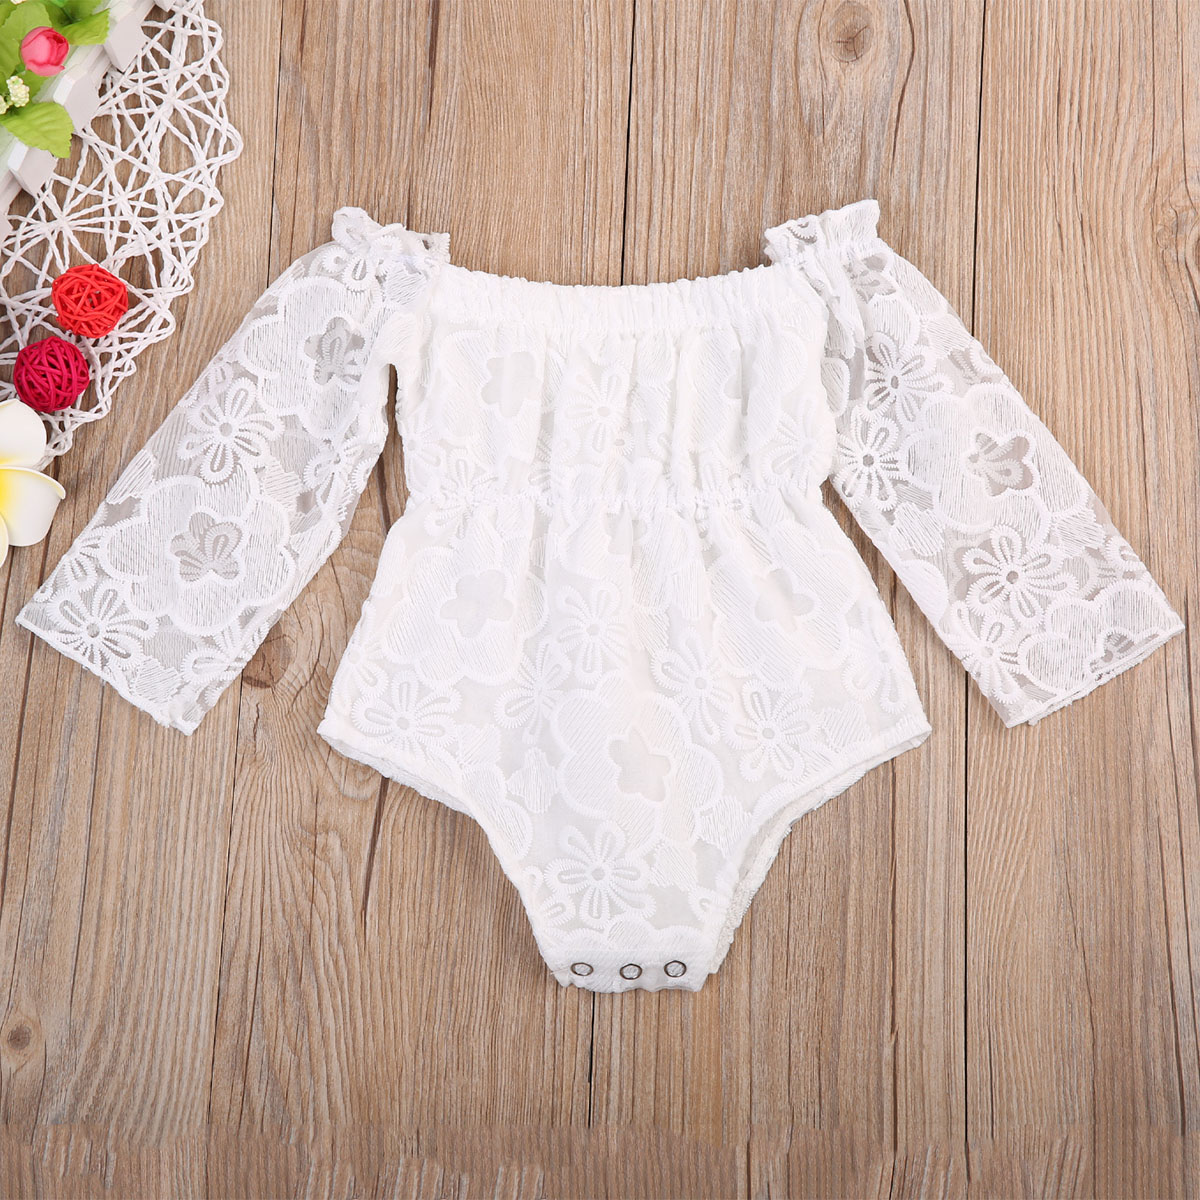 Adorable Summer Newborn Toddler Baby Girl's Clothes Lace Romper Jumpsuit Playsuit Sunsuit Infant Kids Girls Outfits 0-24M fashion 2pcs set newborn baby girls jumpsuit toddler girls flower pattern outfit clothes romper bodysuit pants